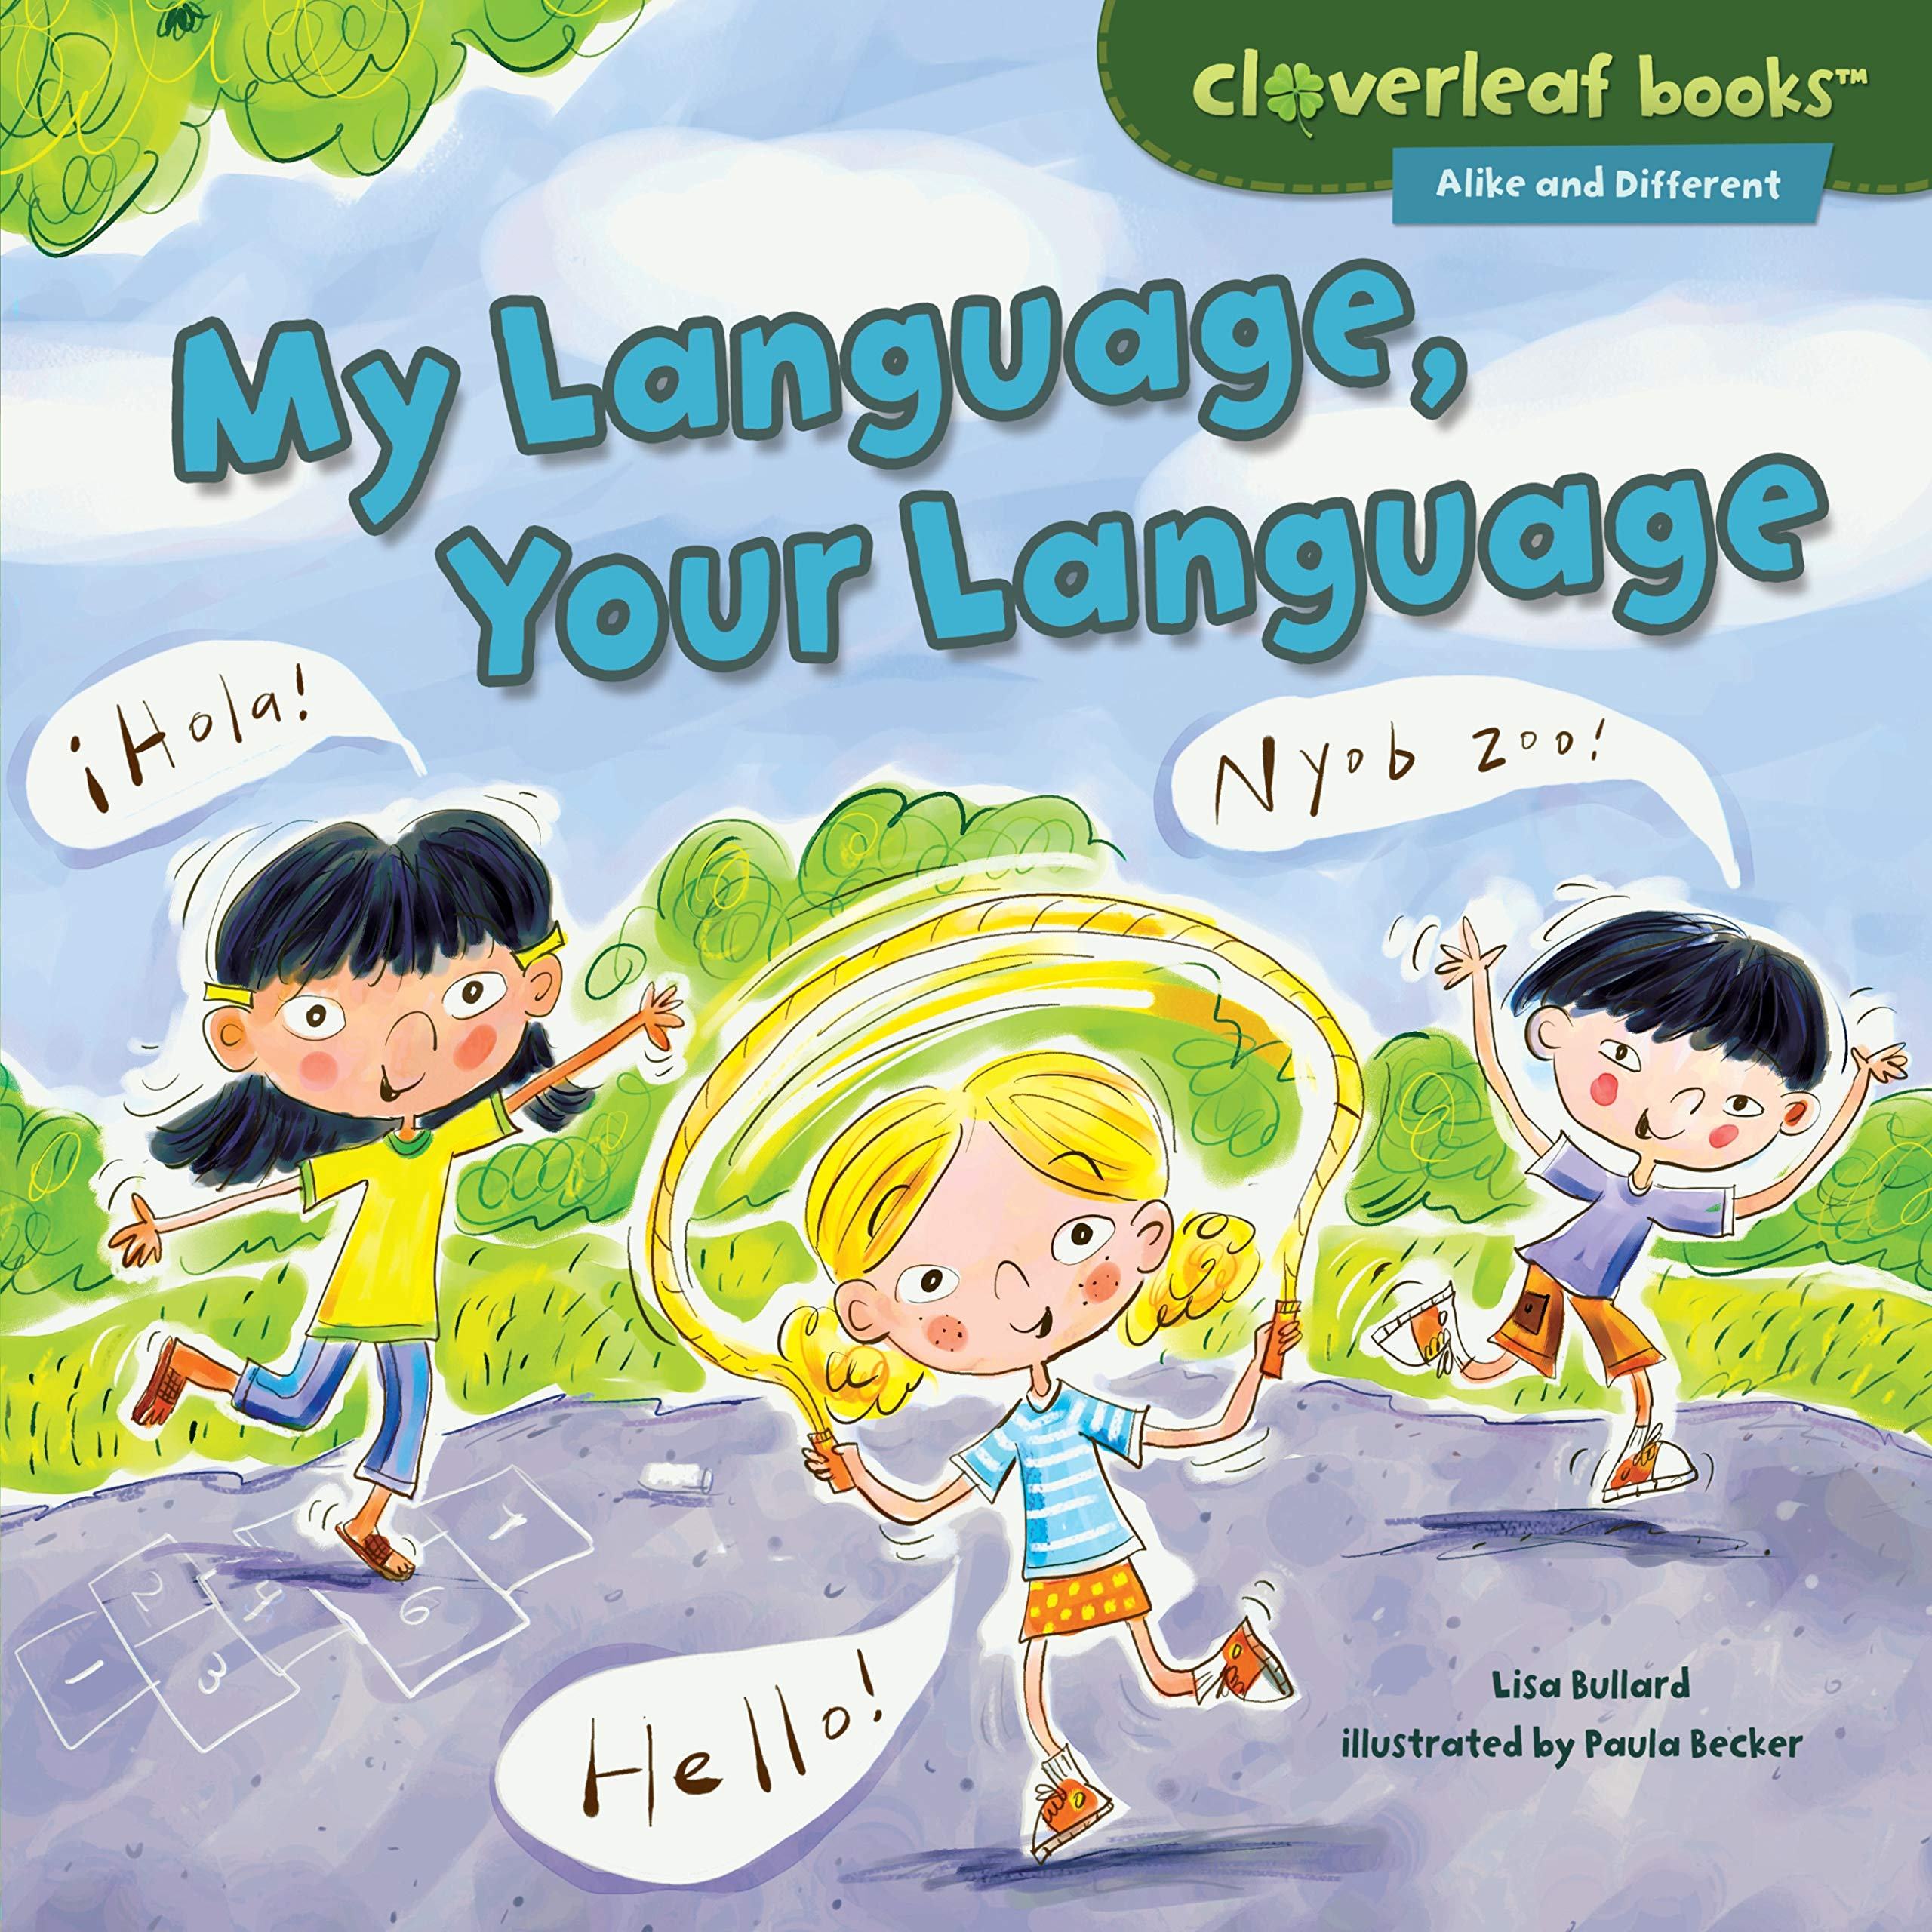 My Language, Your Language (Cloverleaf Books - Alike and Different) by Millbrook Press